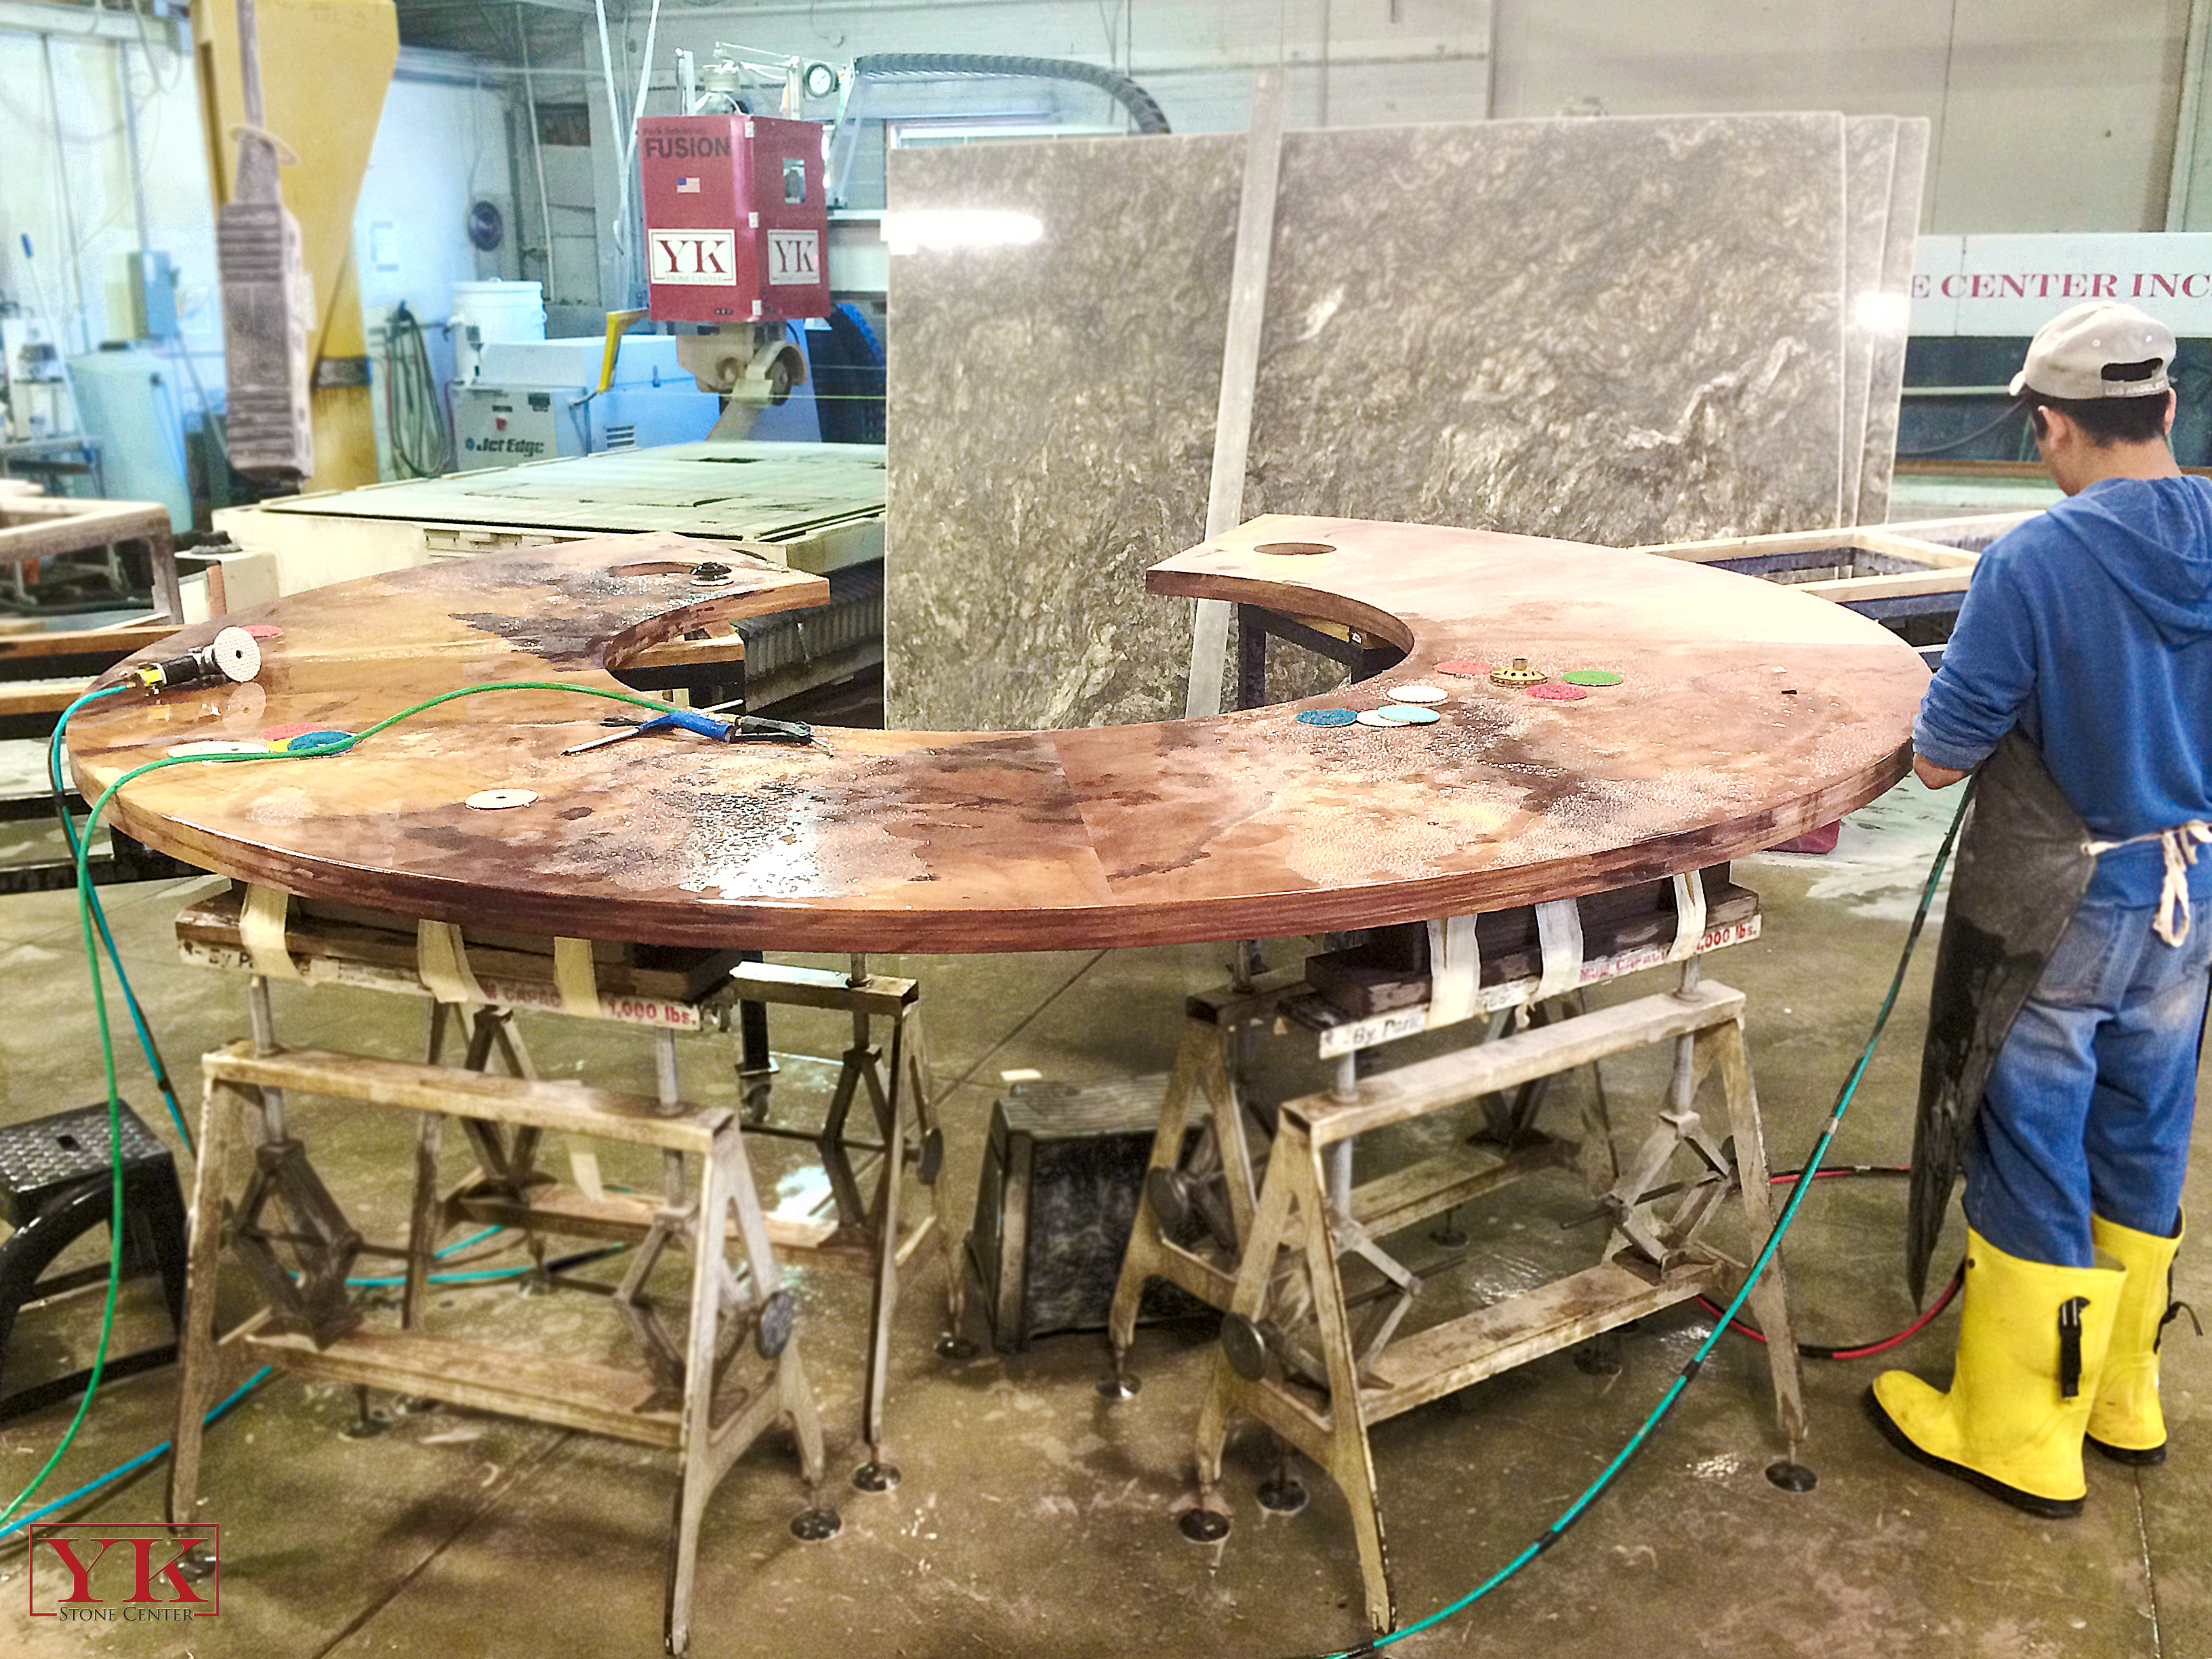 union station tables, fabrication for antero resources in denver colorado, yk stone center fabrication shop denver, co